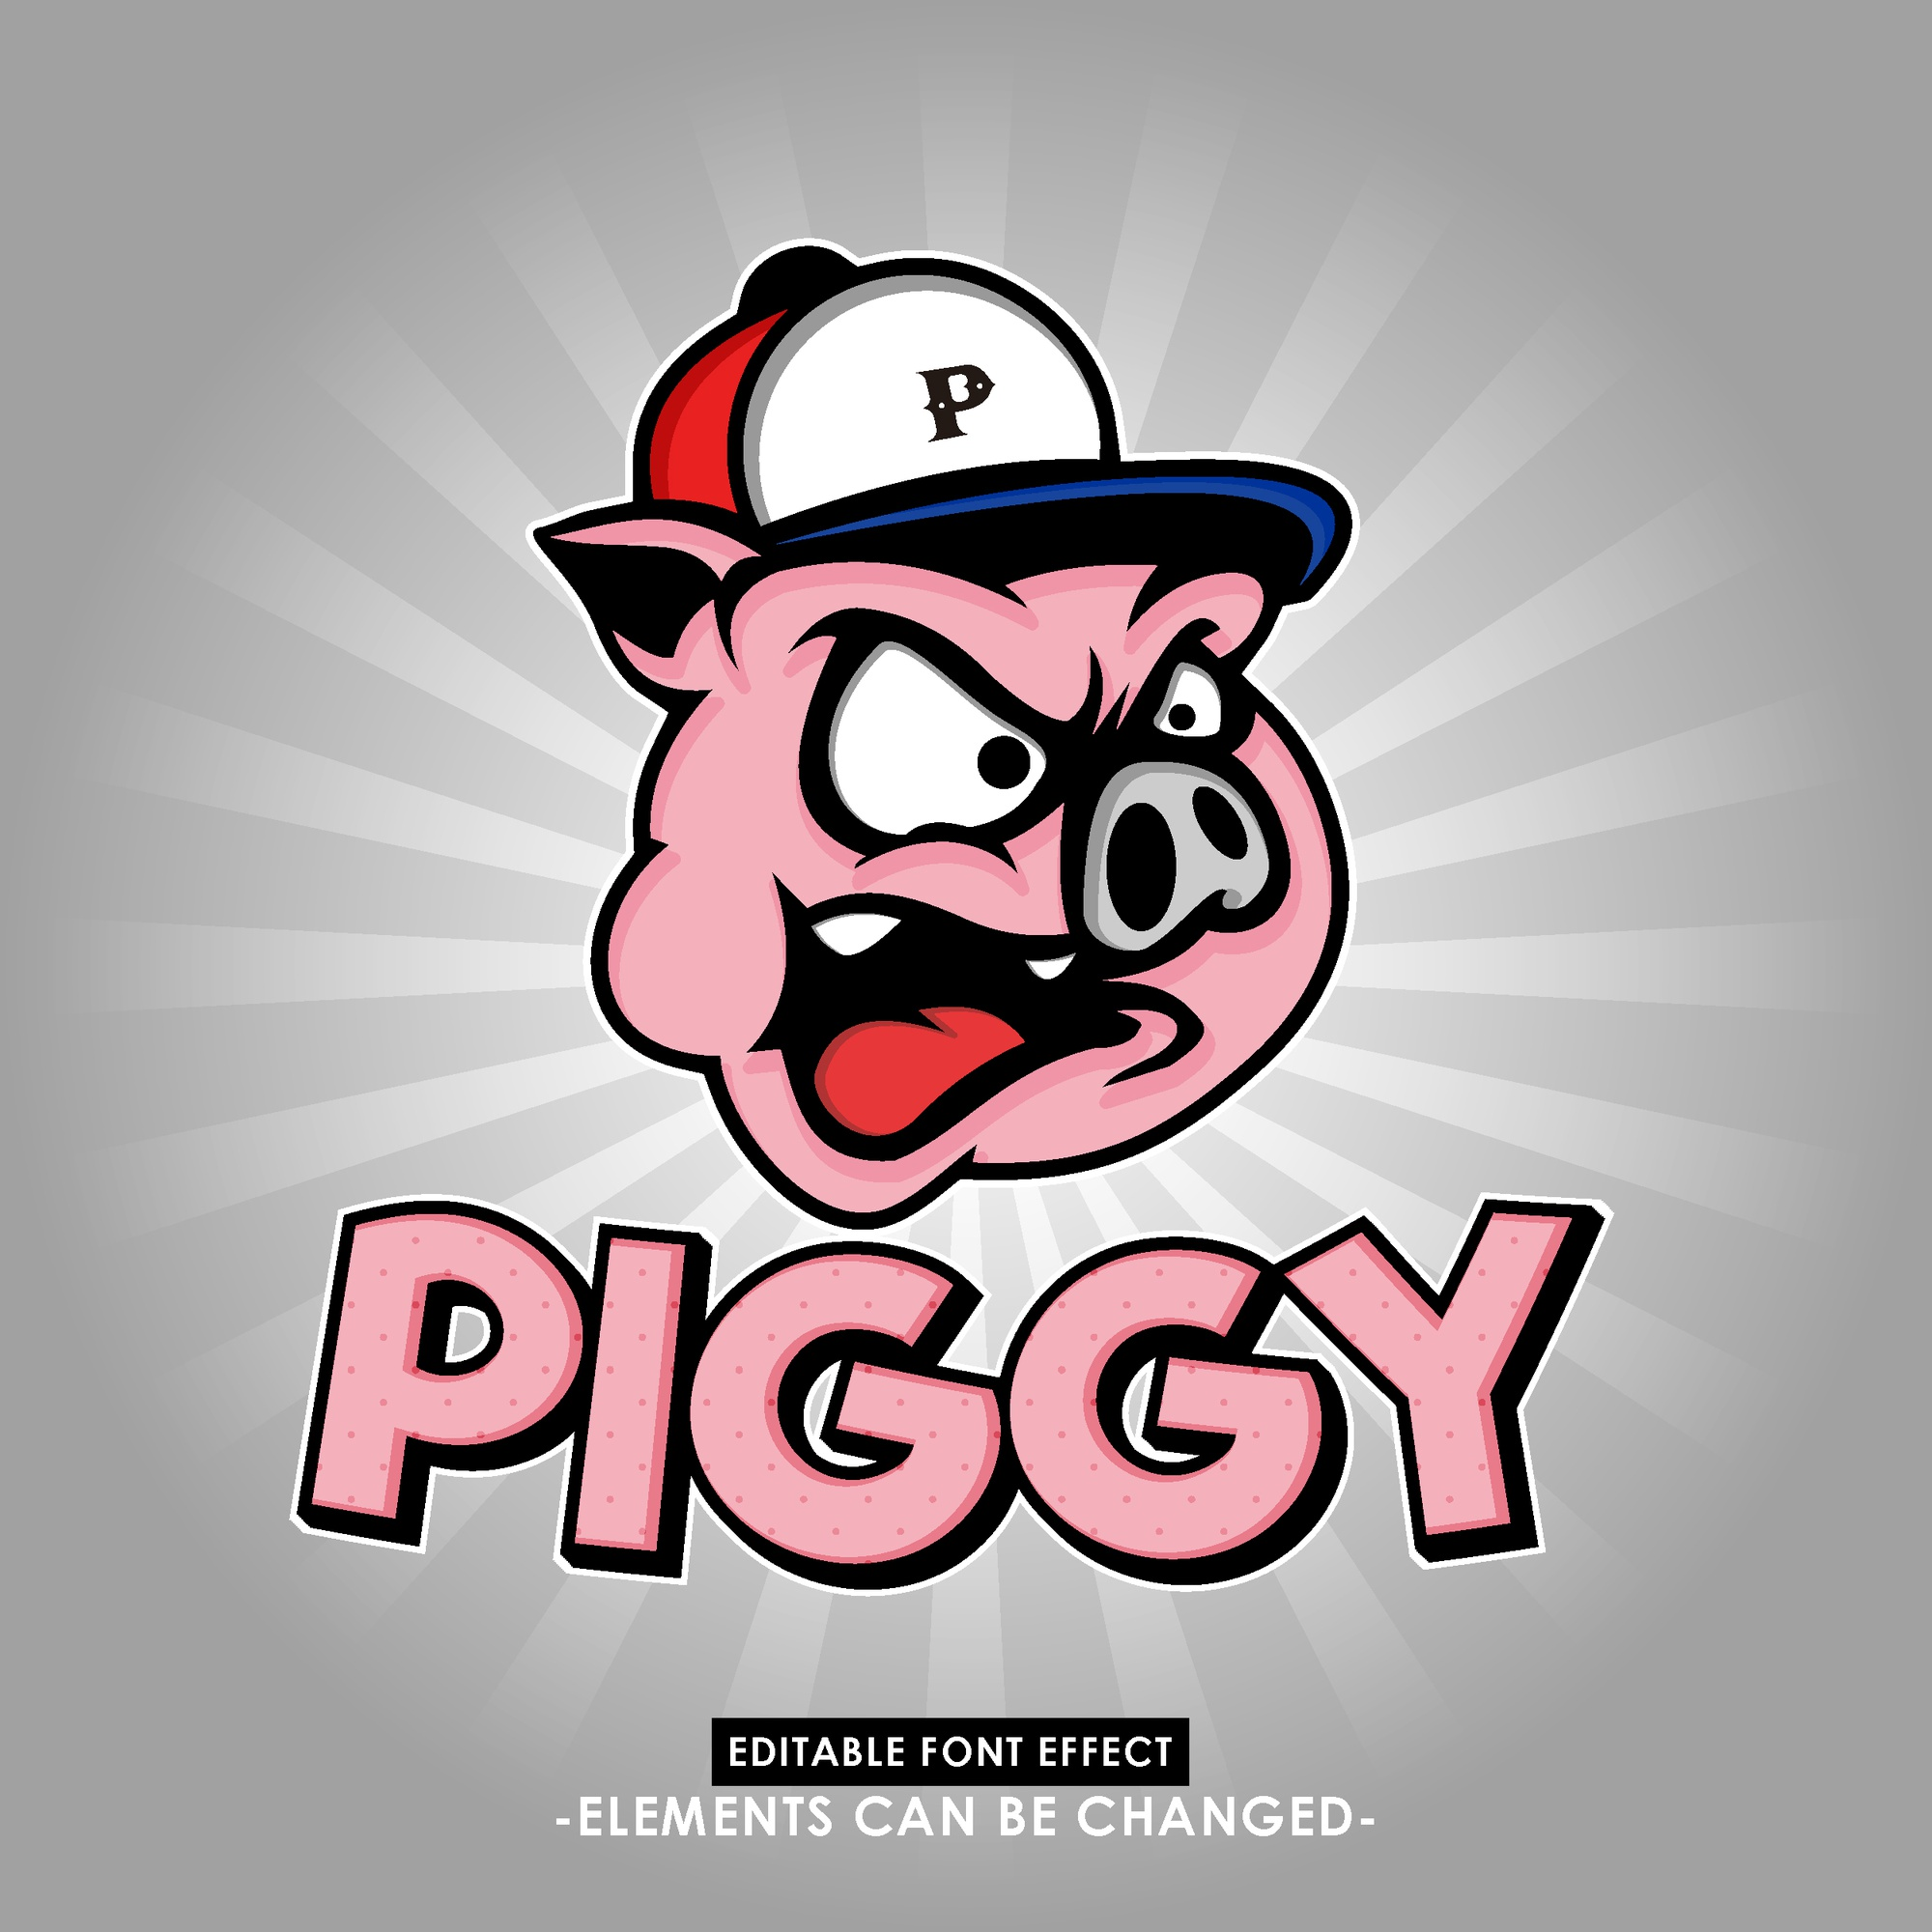 Fun and catchy pig head illustration  with fancy font effect